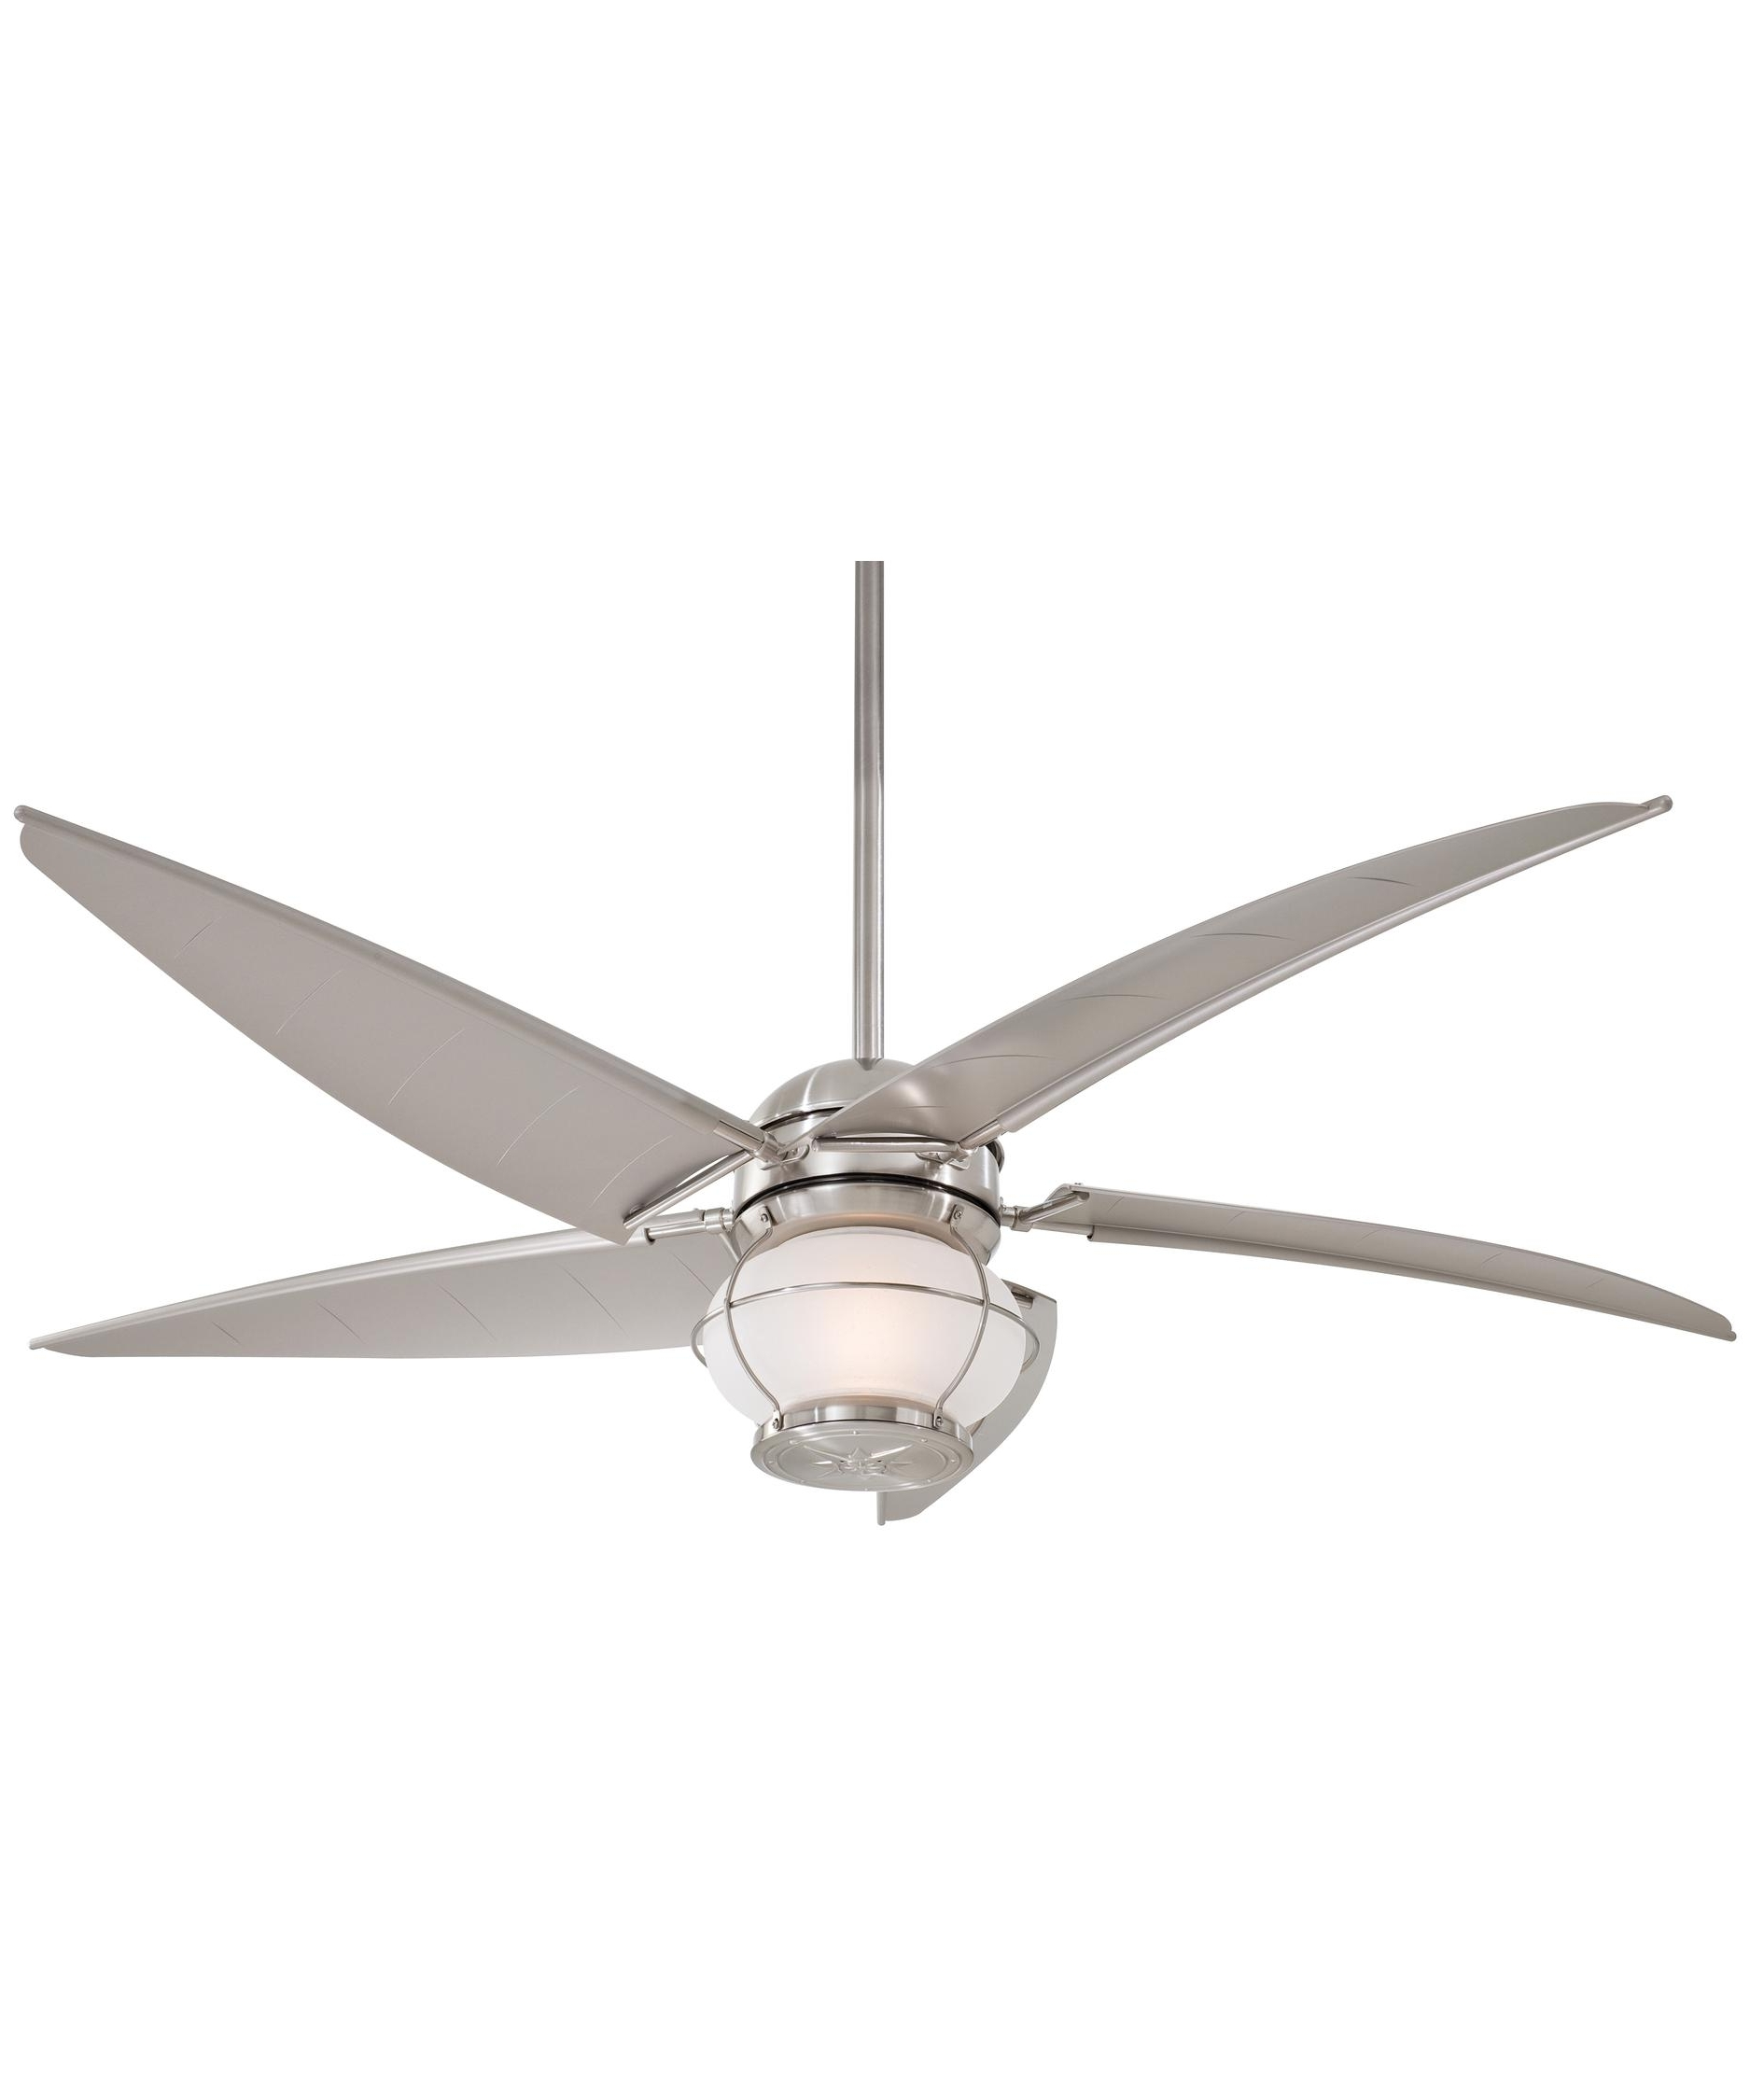 2019 Nickel Outdoor Ceiling Fans Pertaining To Minka Aire F579 Magellan 60 Inch 5 Blade Ceiling Fan (View 5 of 20)